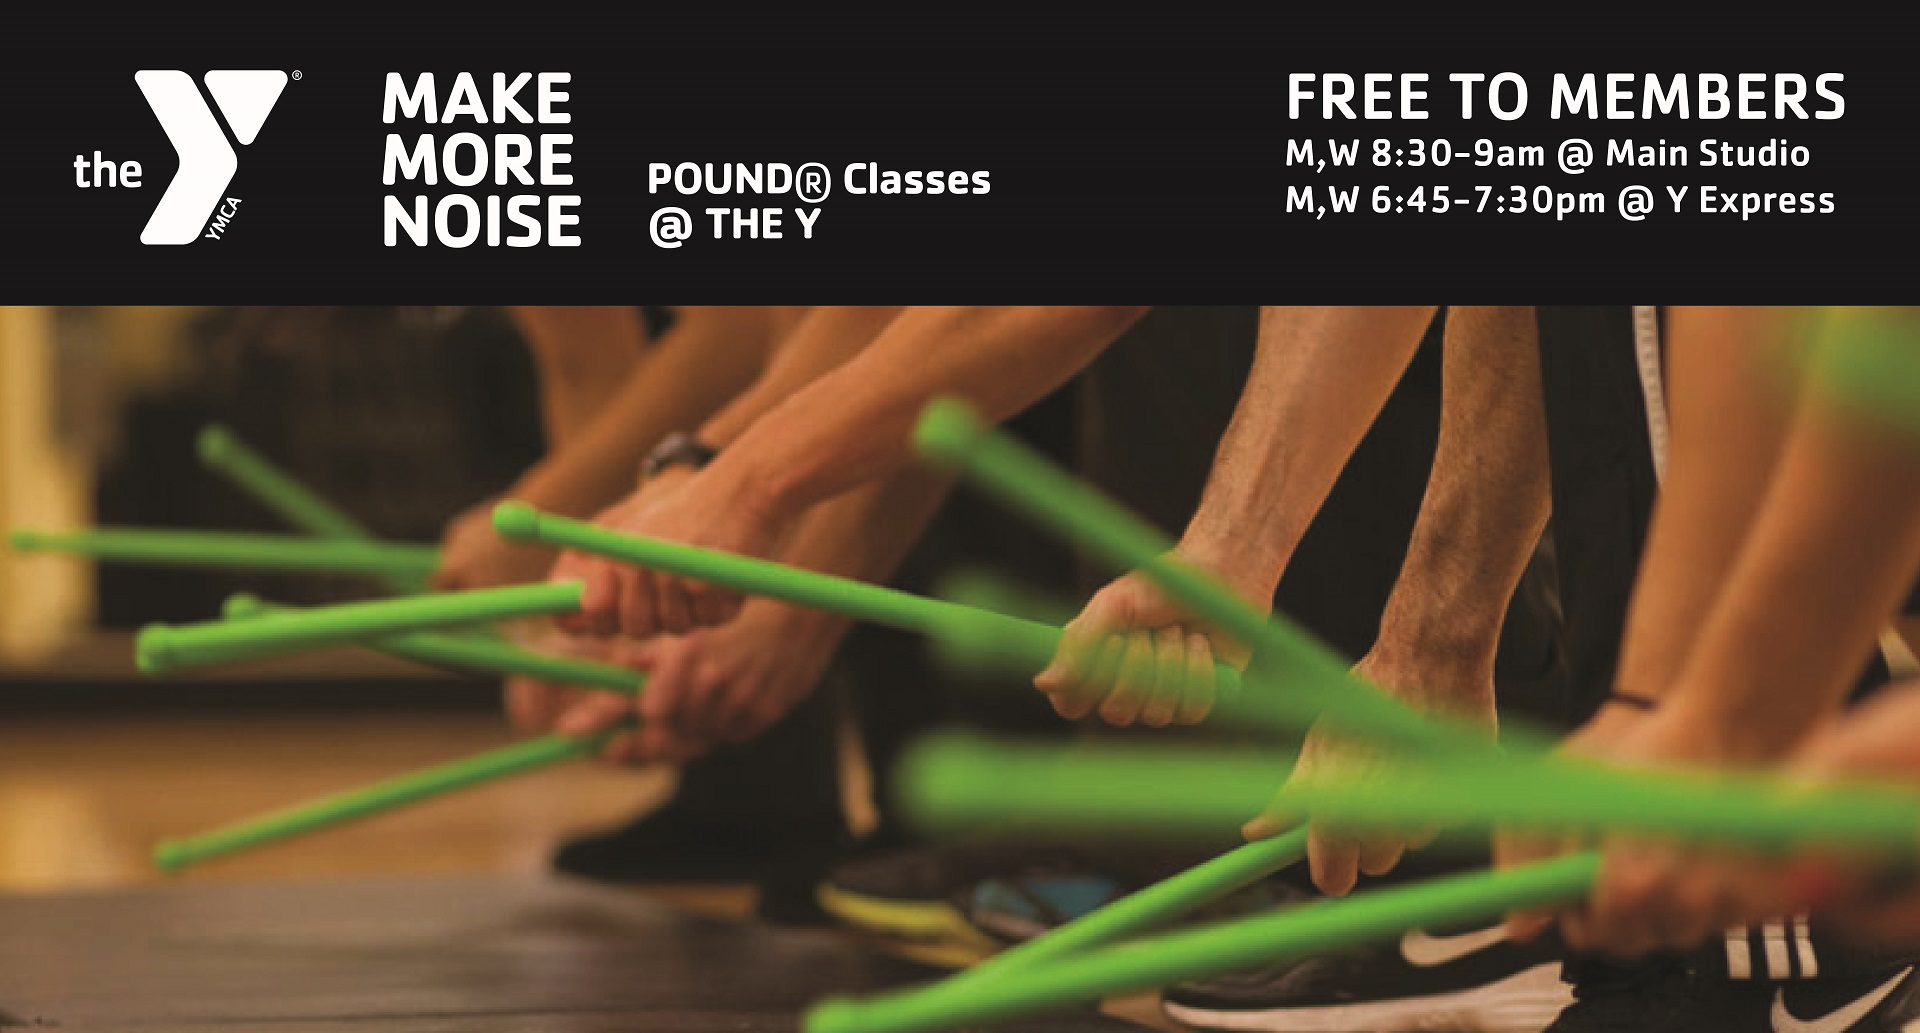 Pound Classes